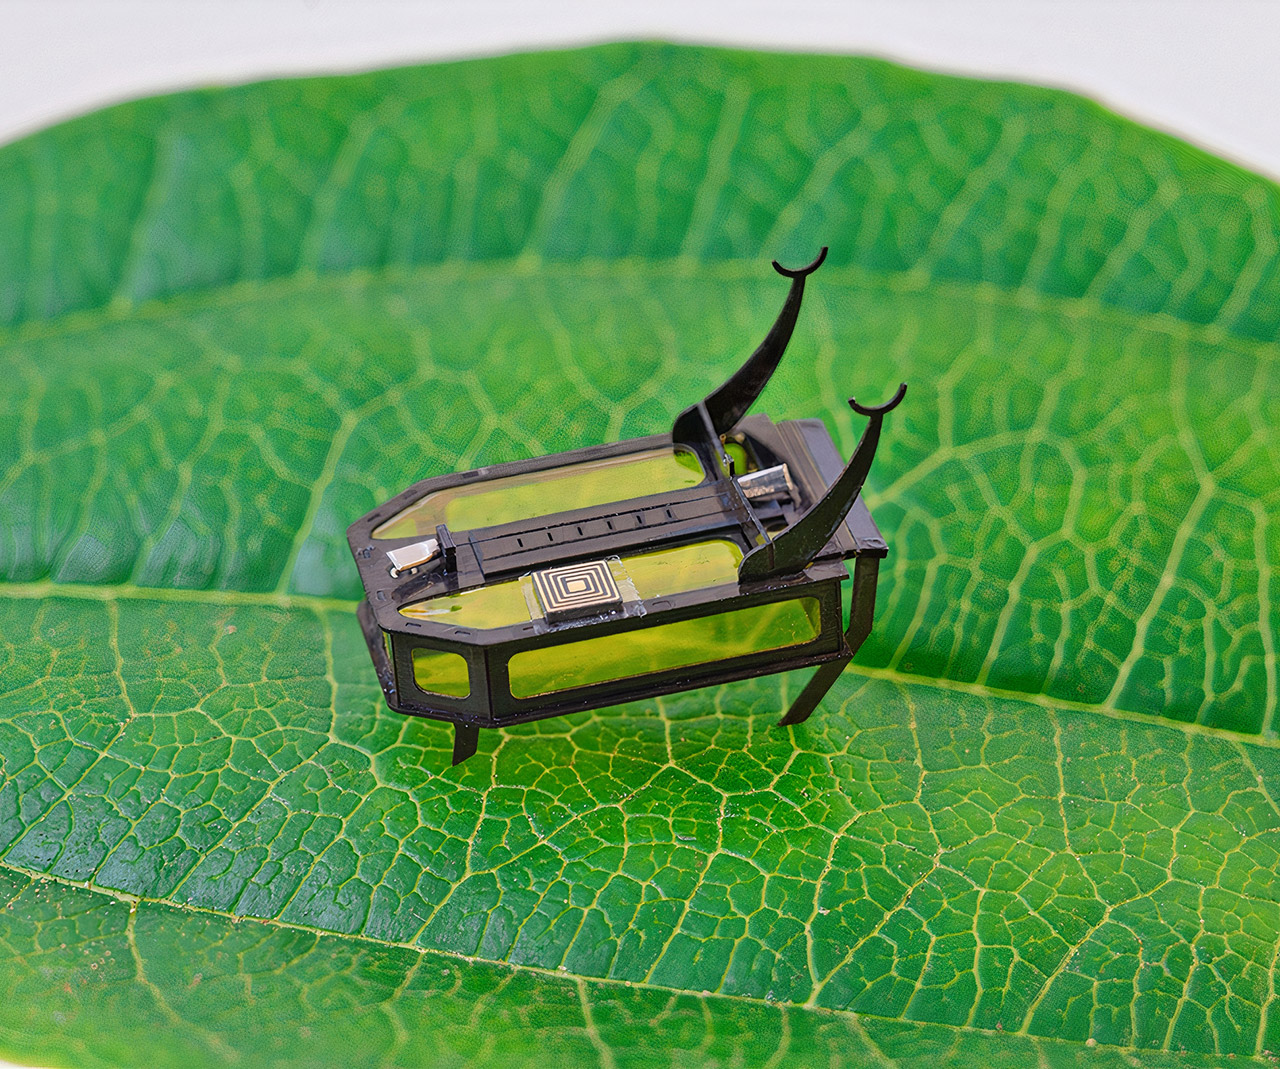 Robeetle Lightest Crawling Robot Guinness World Record